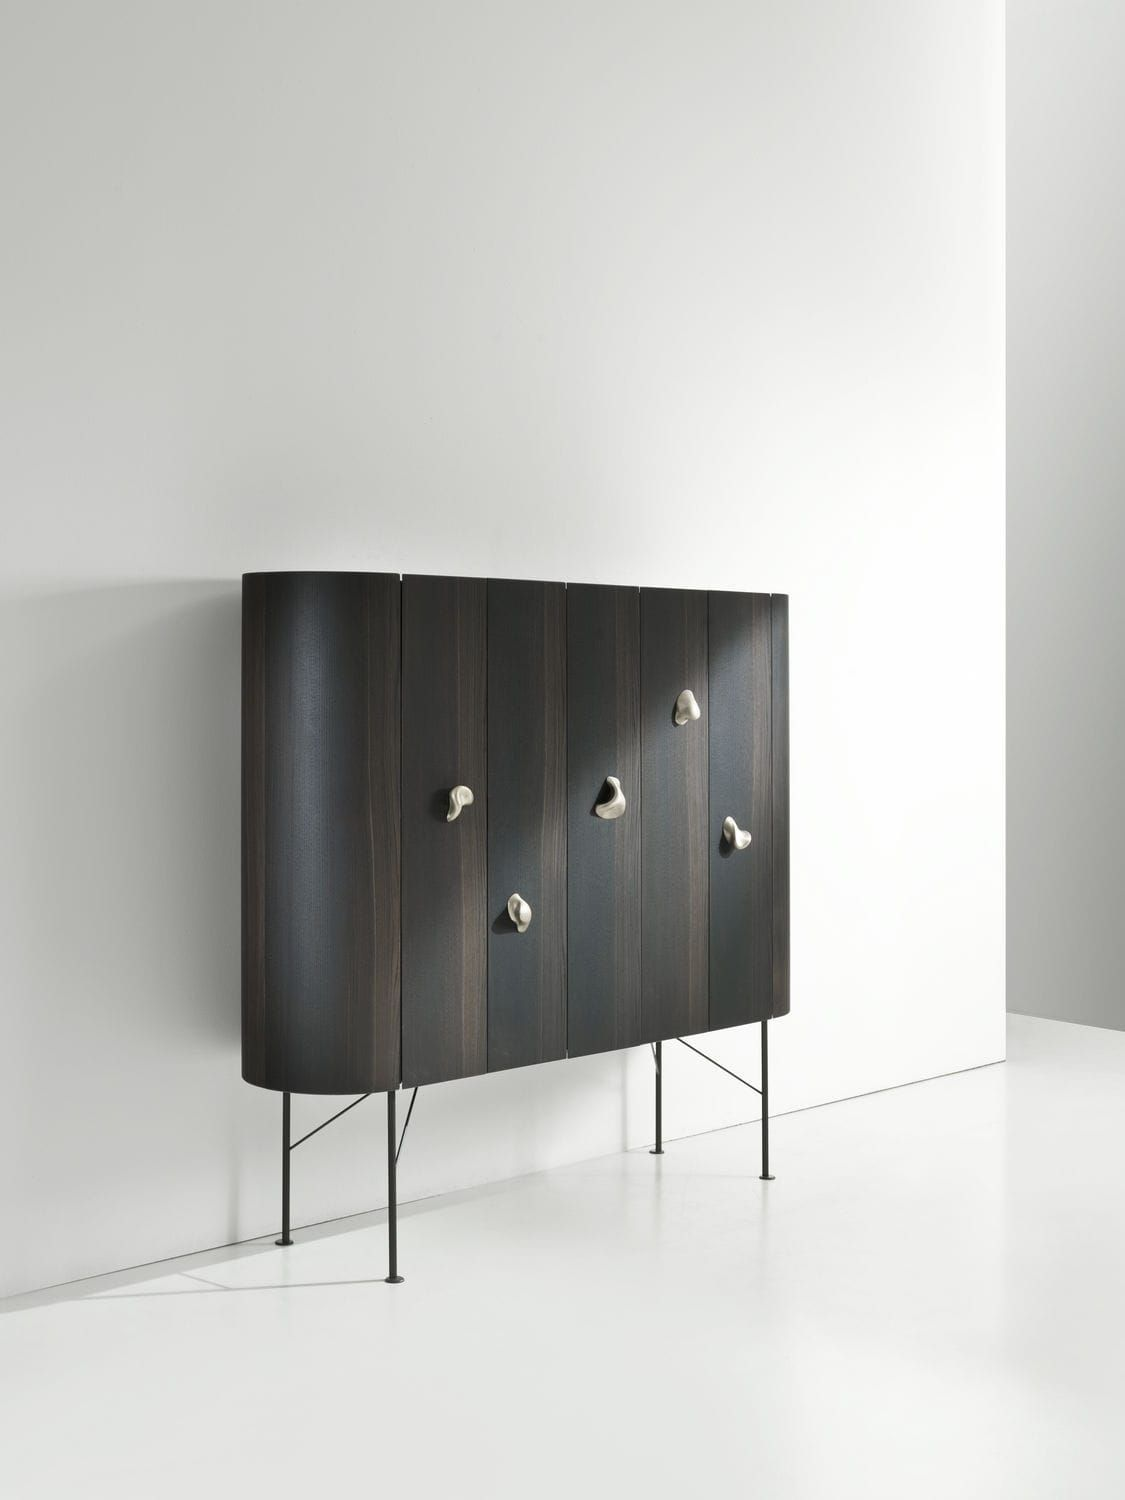 Möbel Design Holz Moderner Sekretär Aus Metall Holz Collectionist Laurameroni